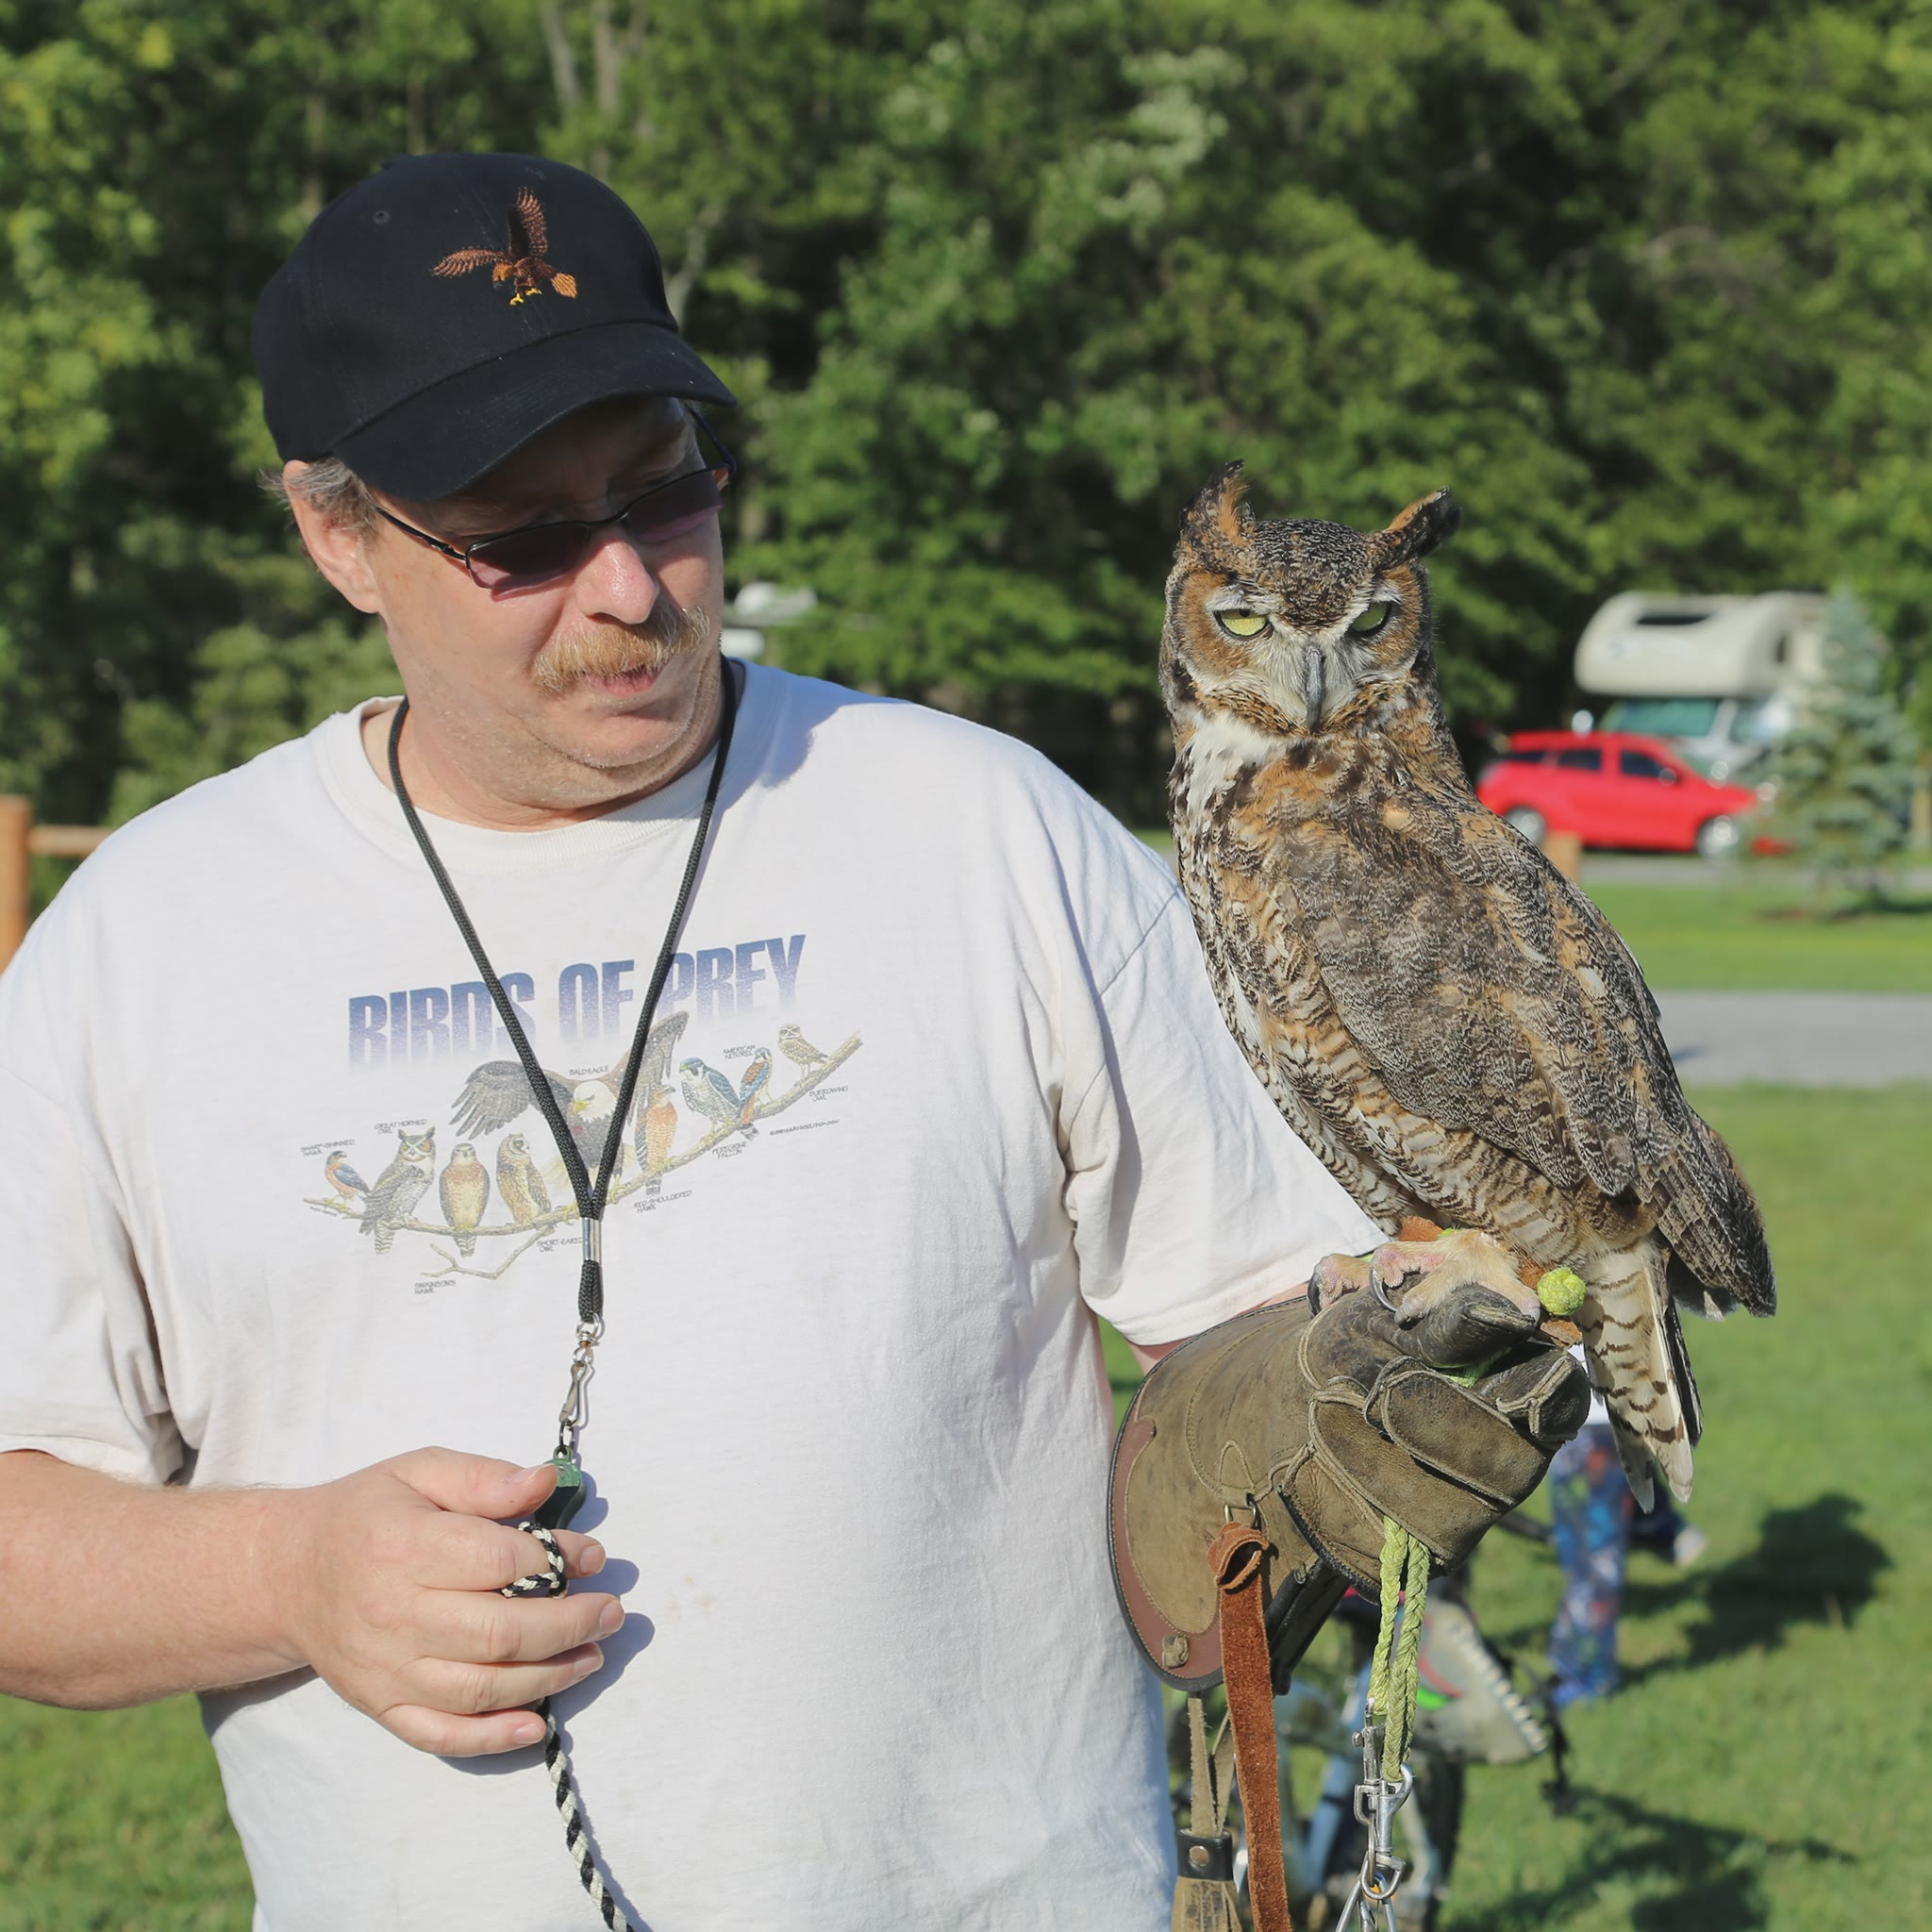 Man holding an owl on his hand